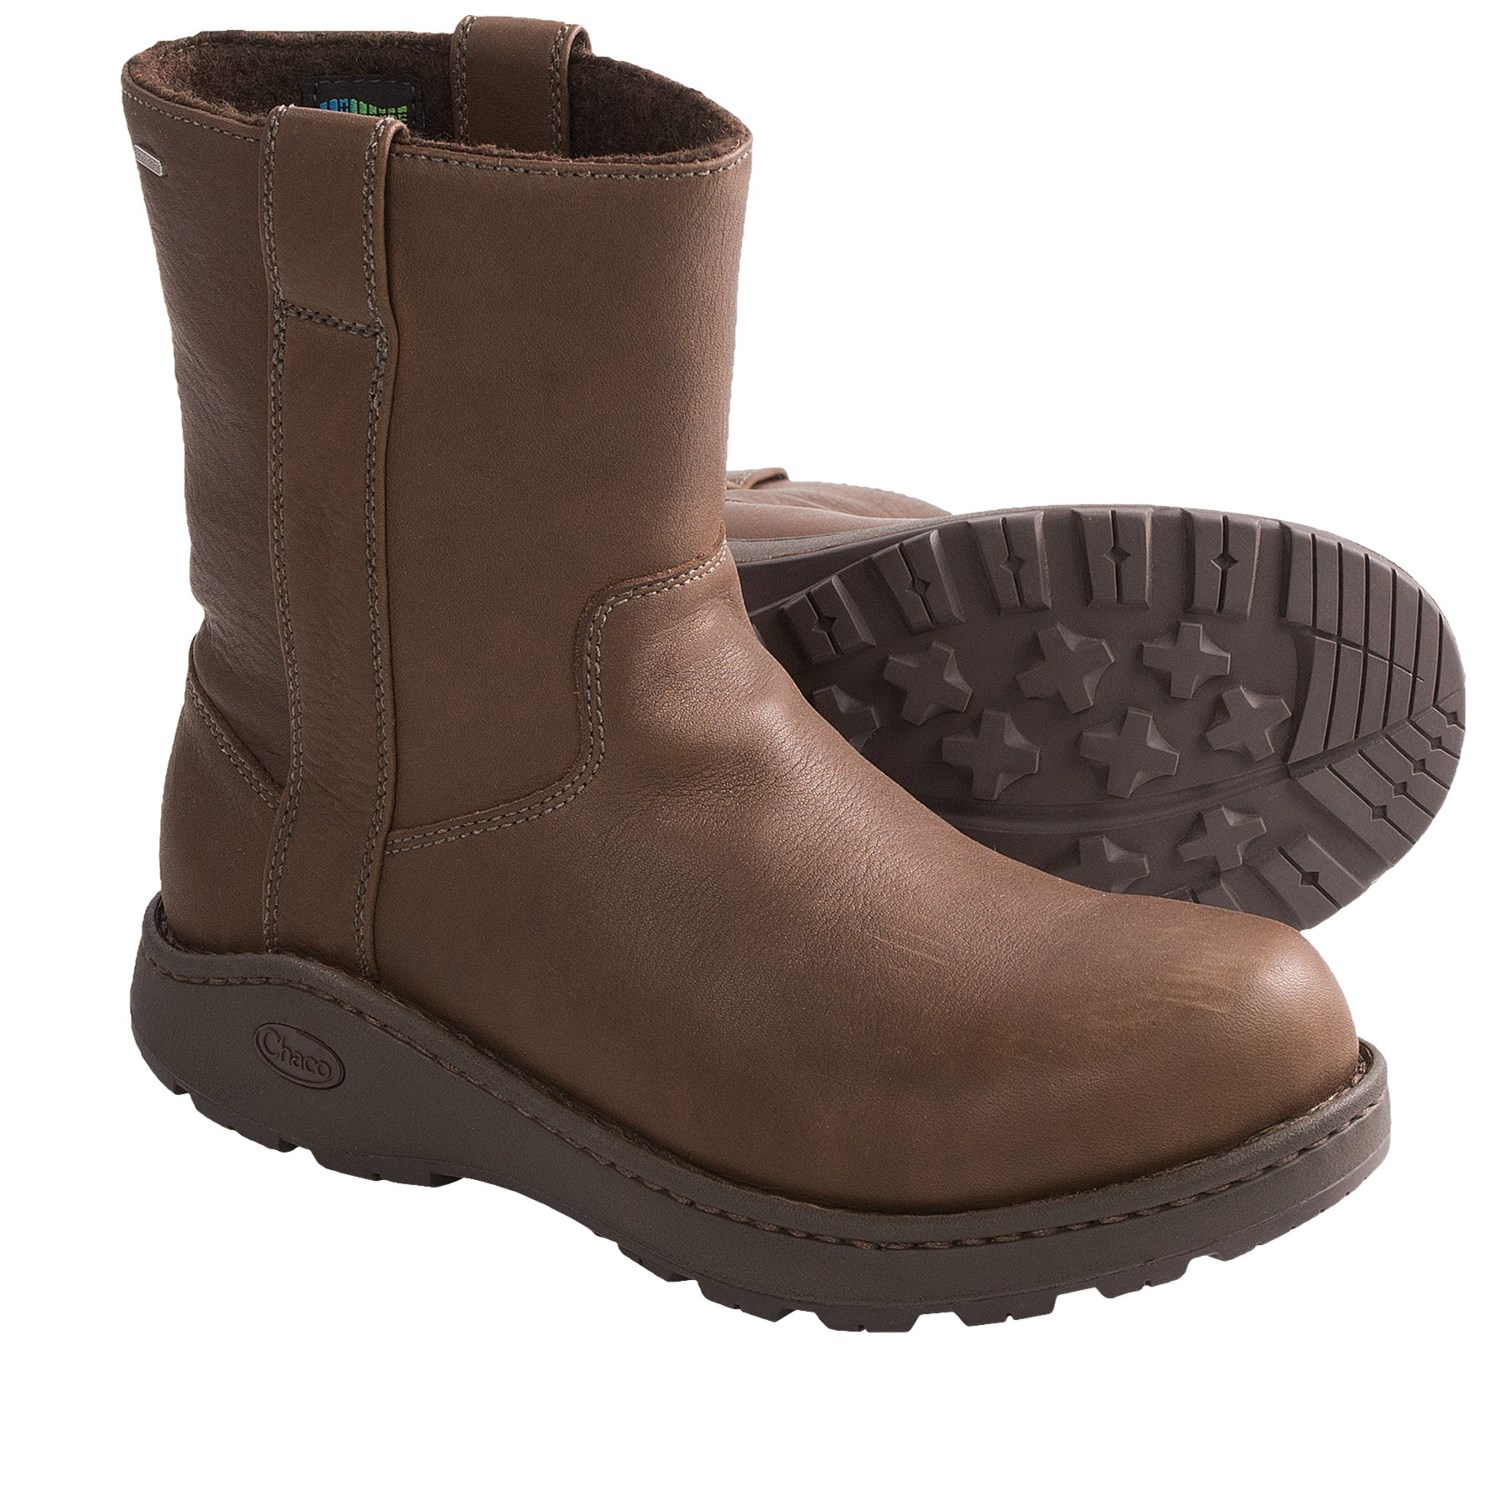 Mens Leather Waterproof Snow Boots | Planetary Skin Institute